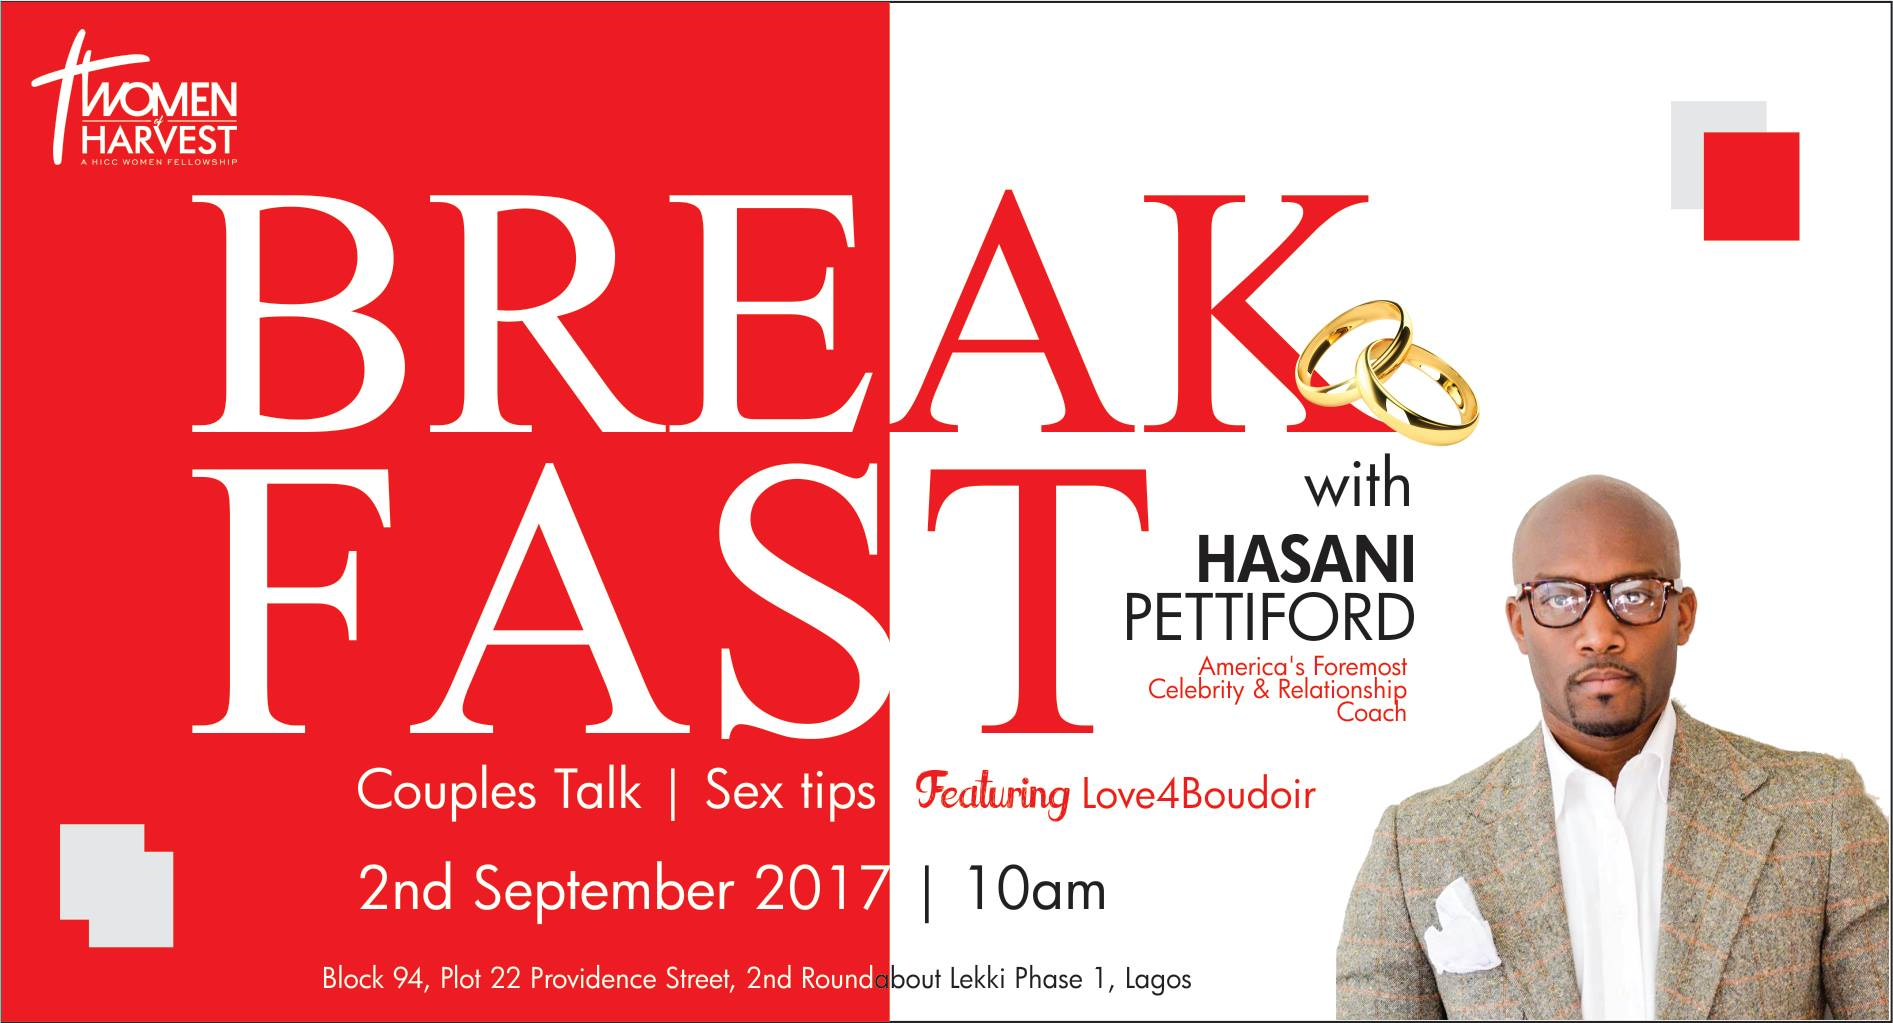 Breakfast With Hasani Pettiford